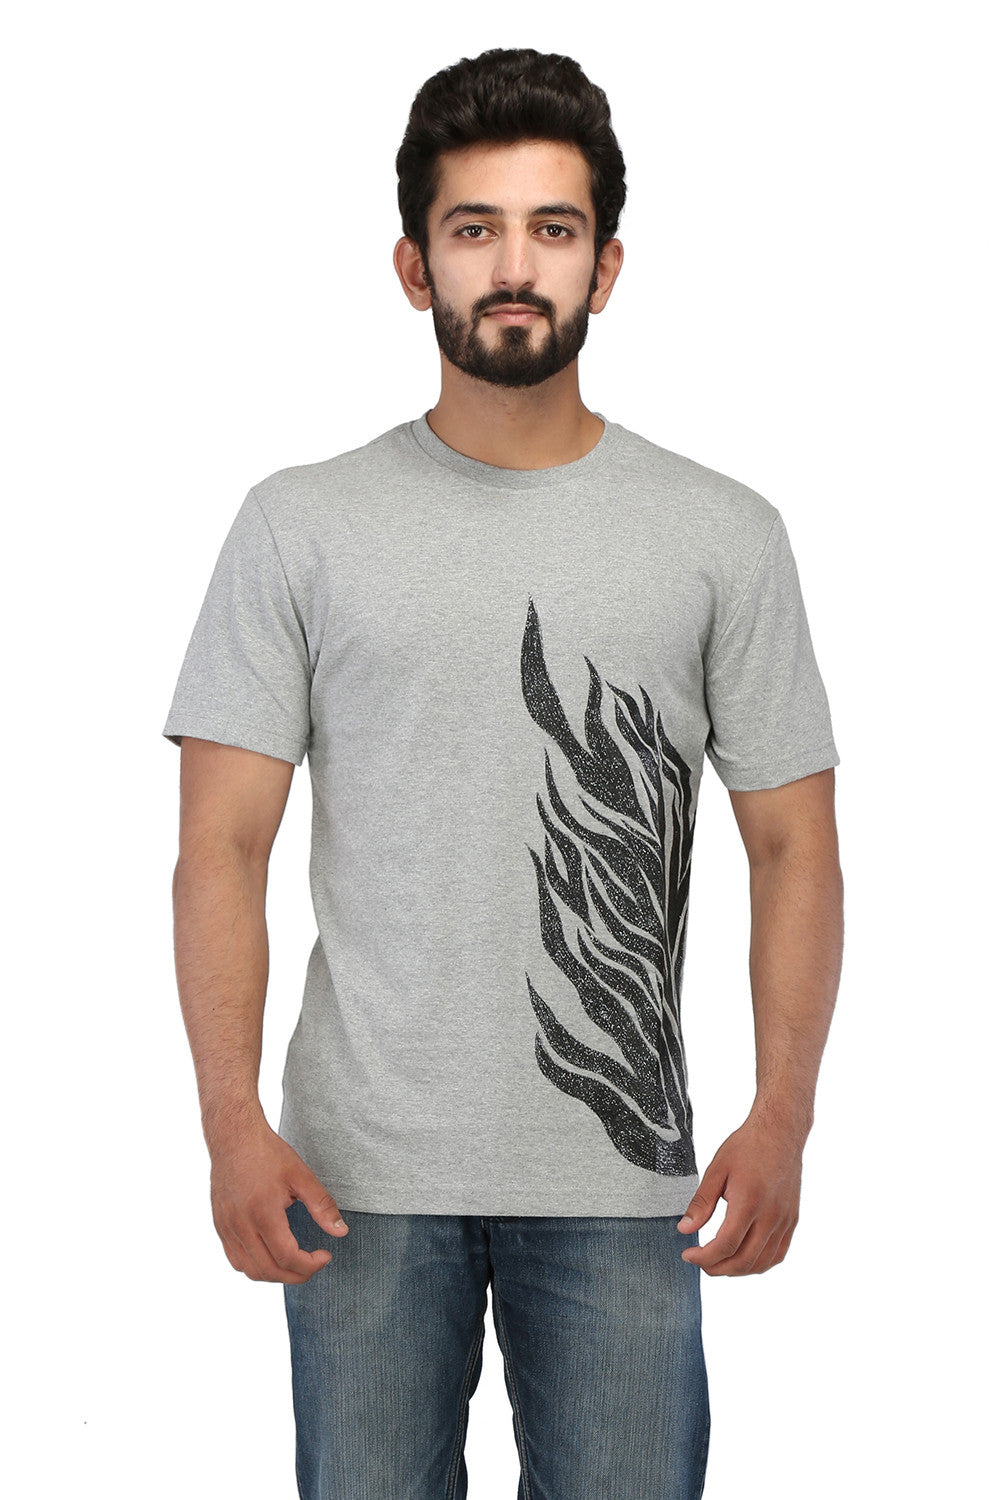 Hand-painted Flames of Passion Grey T-shirt - Rang Rage  - 1